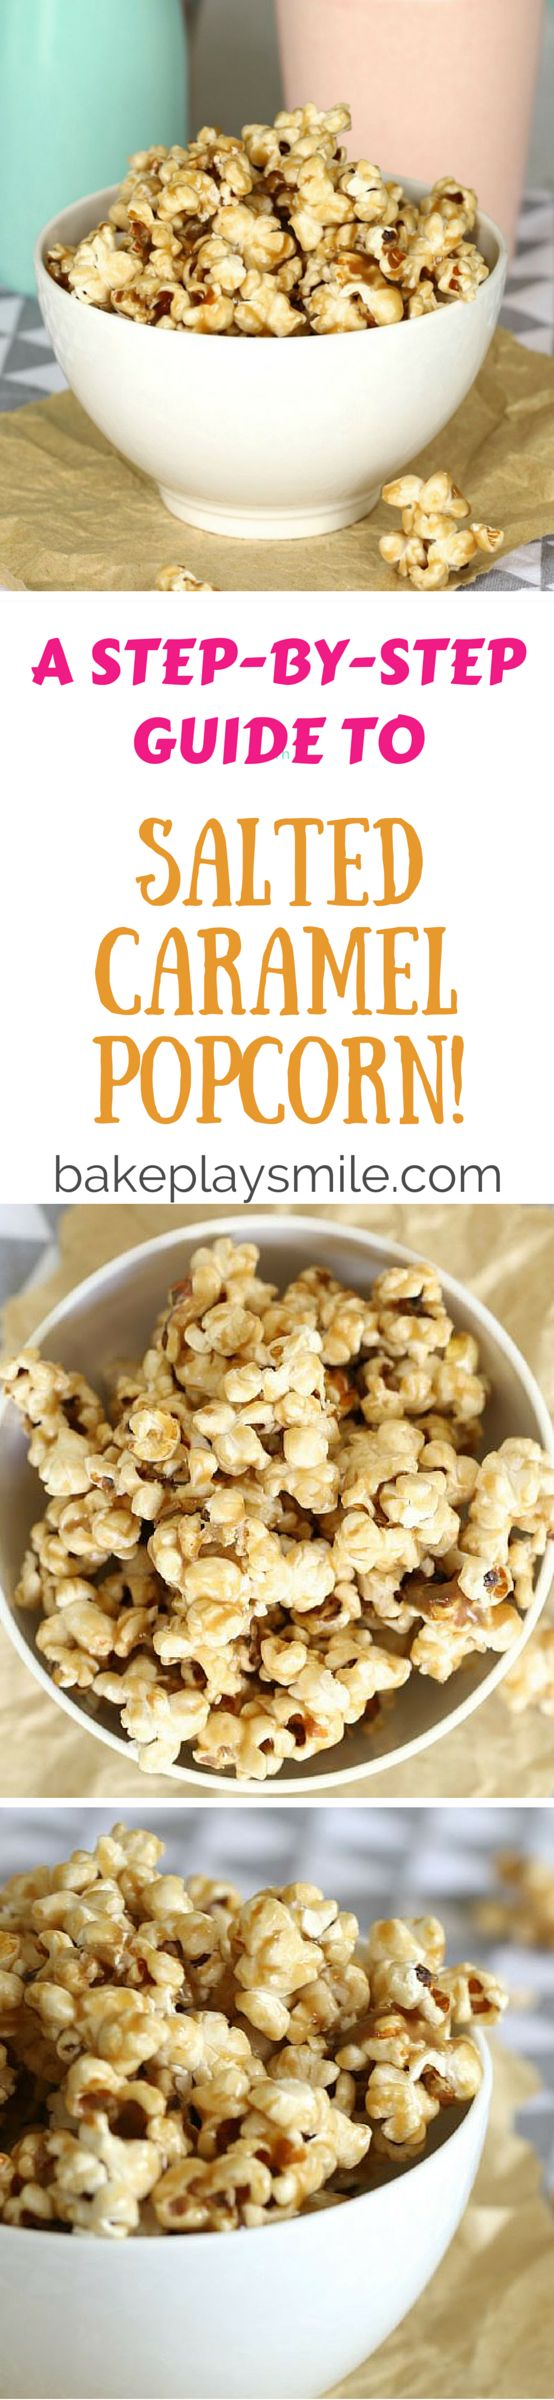 The most deliciously simple Salted Caramel Popcorn recipe (and it doesn't even involve turning the oven on!!).   Bake Play Smile #salted #caramel #popcorn #easy #recipe #party #food